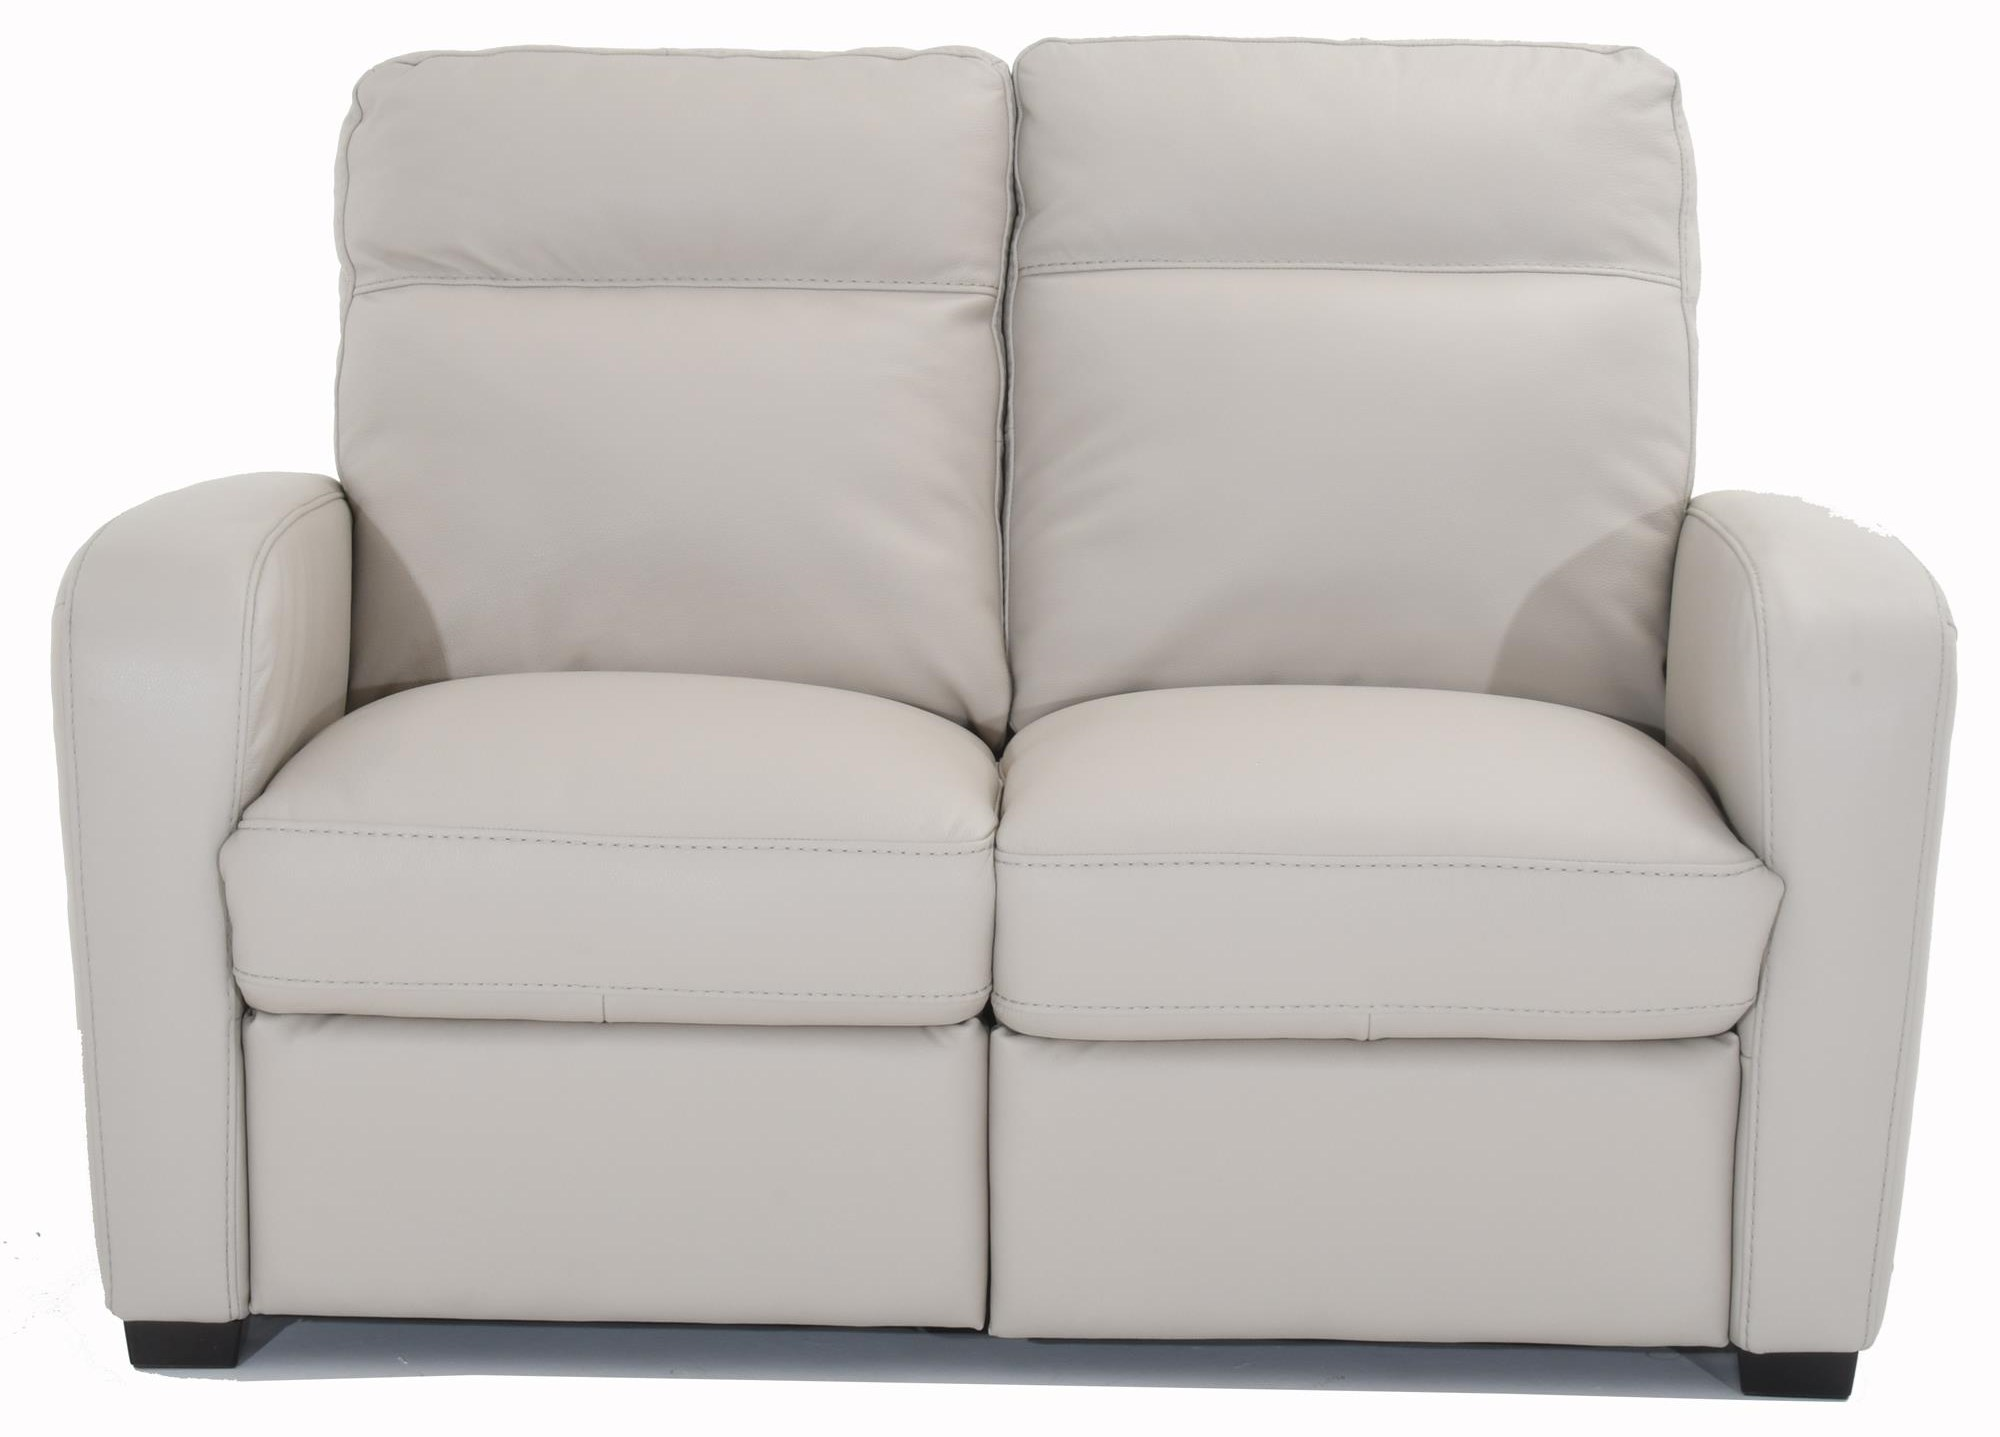 Accoglienza Leather Power Reclining Loveseat by Natuzzi Editions at Baer's Furniture